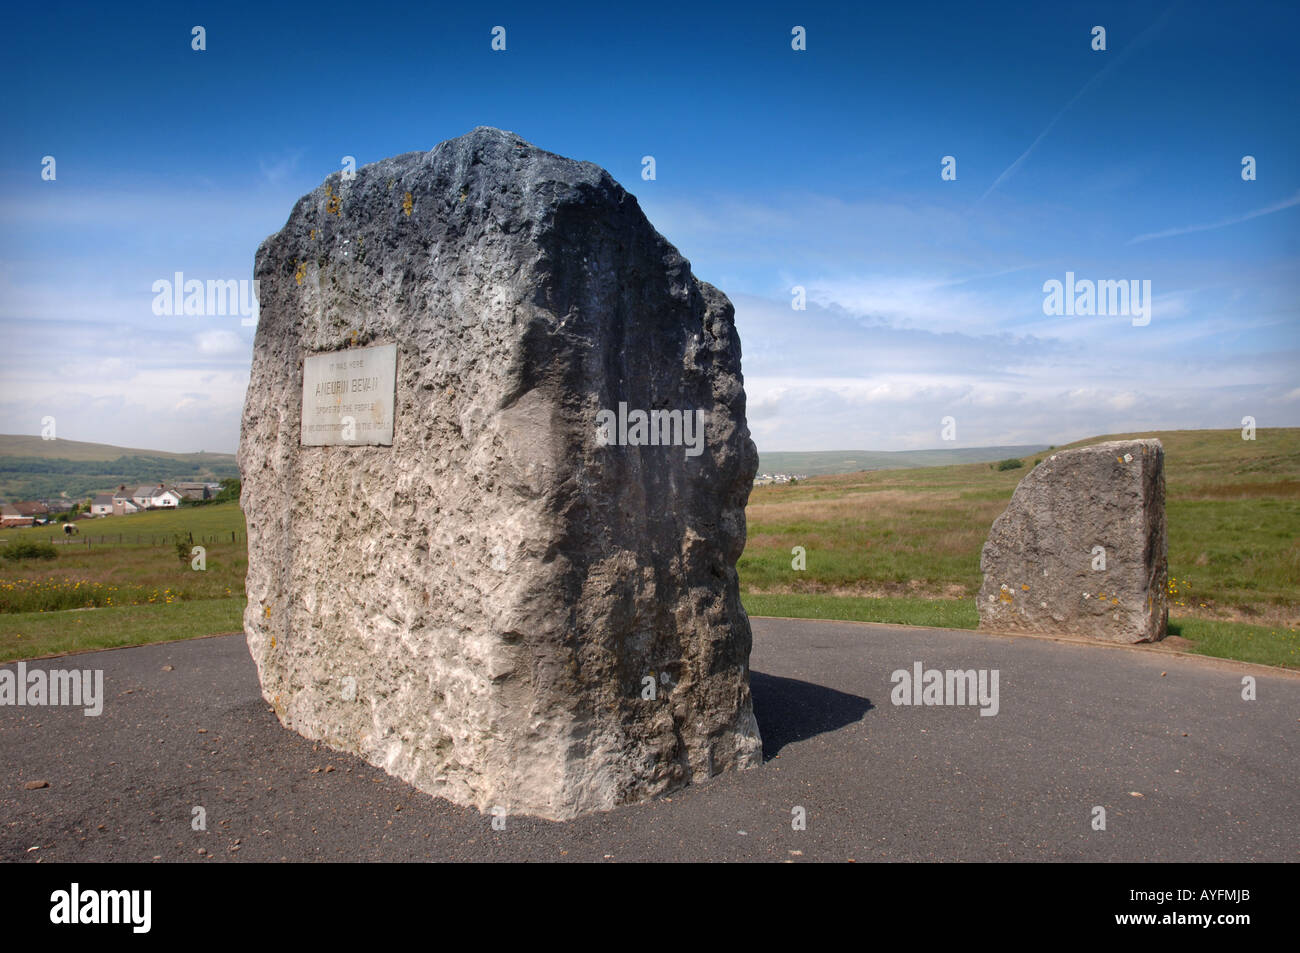 THE MEMORIAL TO ANEURIN BEVAN WHO FORMED THE NATIONAL HEALTH SERVICE OVERLOOKING TREDEGAR NEAR EBBW VALE GWENT SOUTH WALES UK - Stock Image